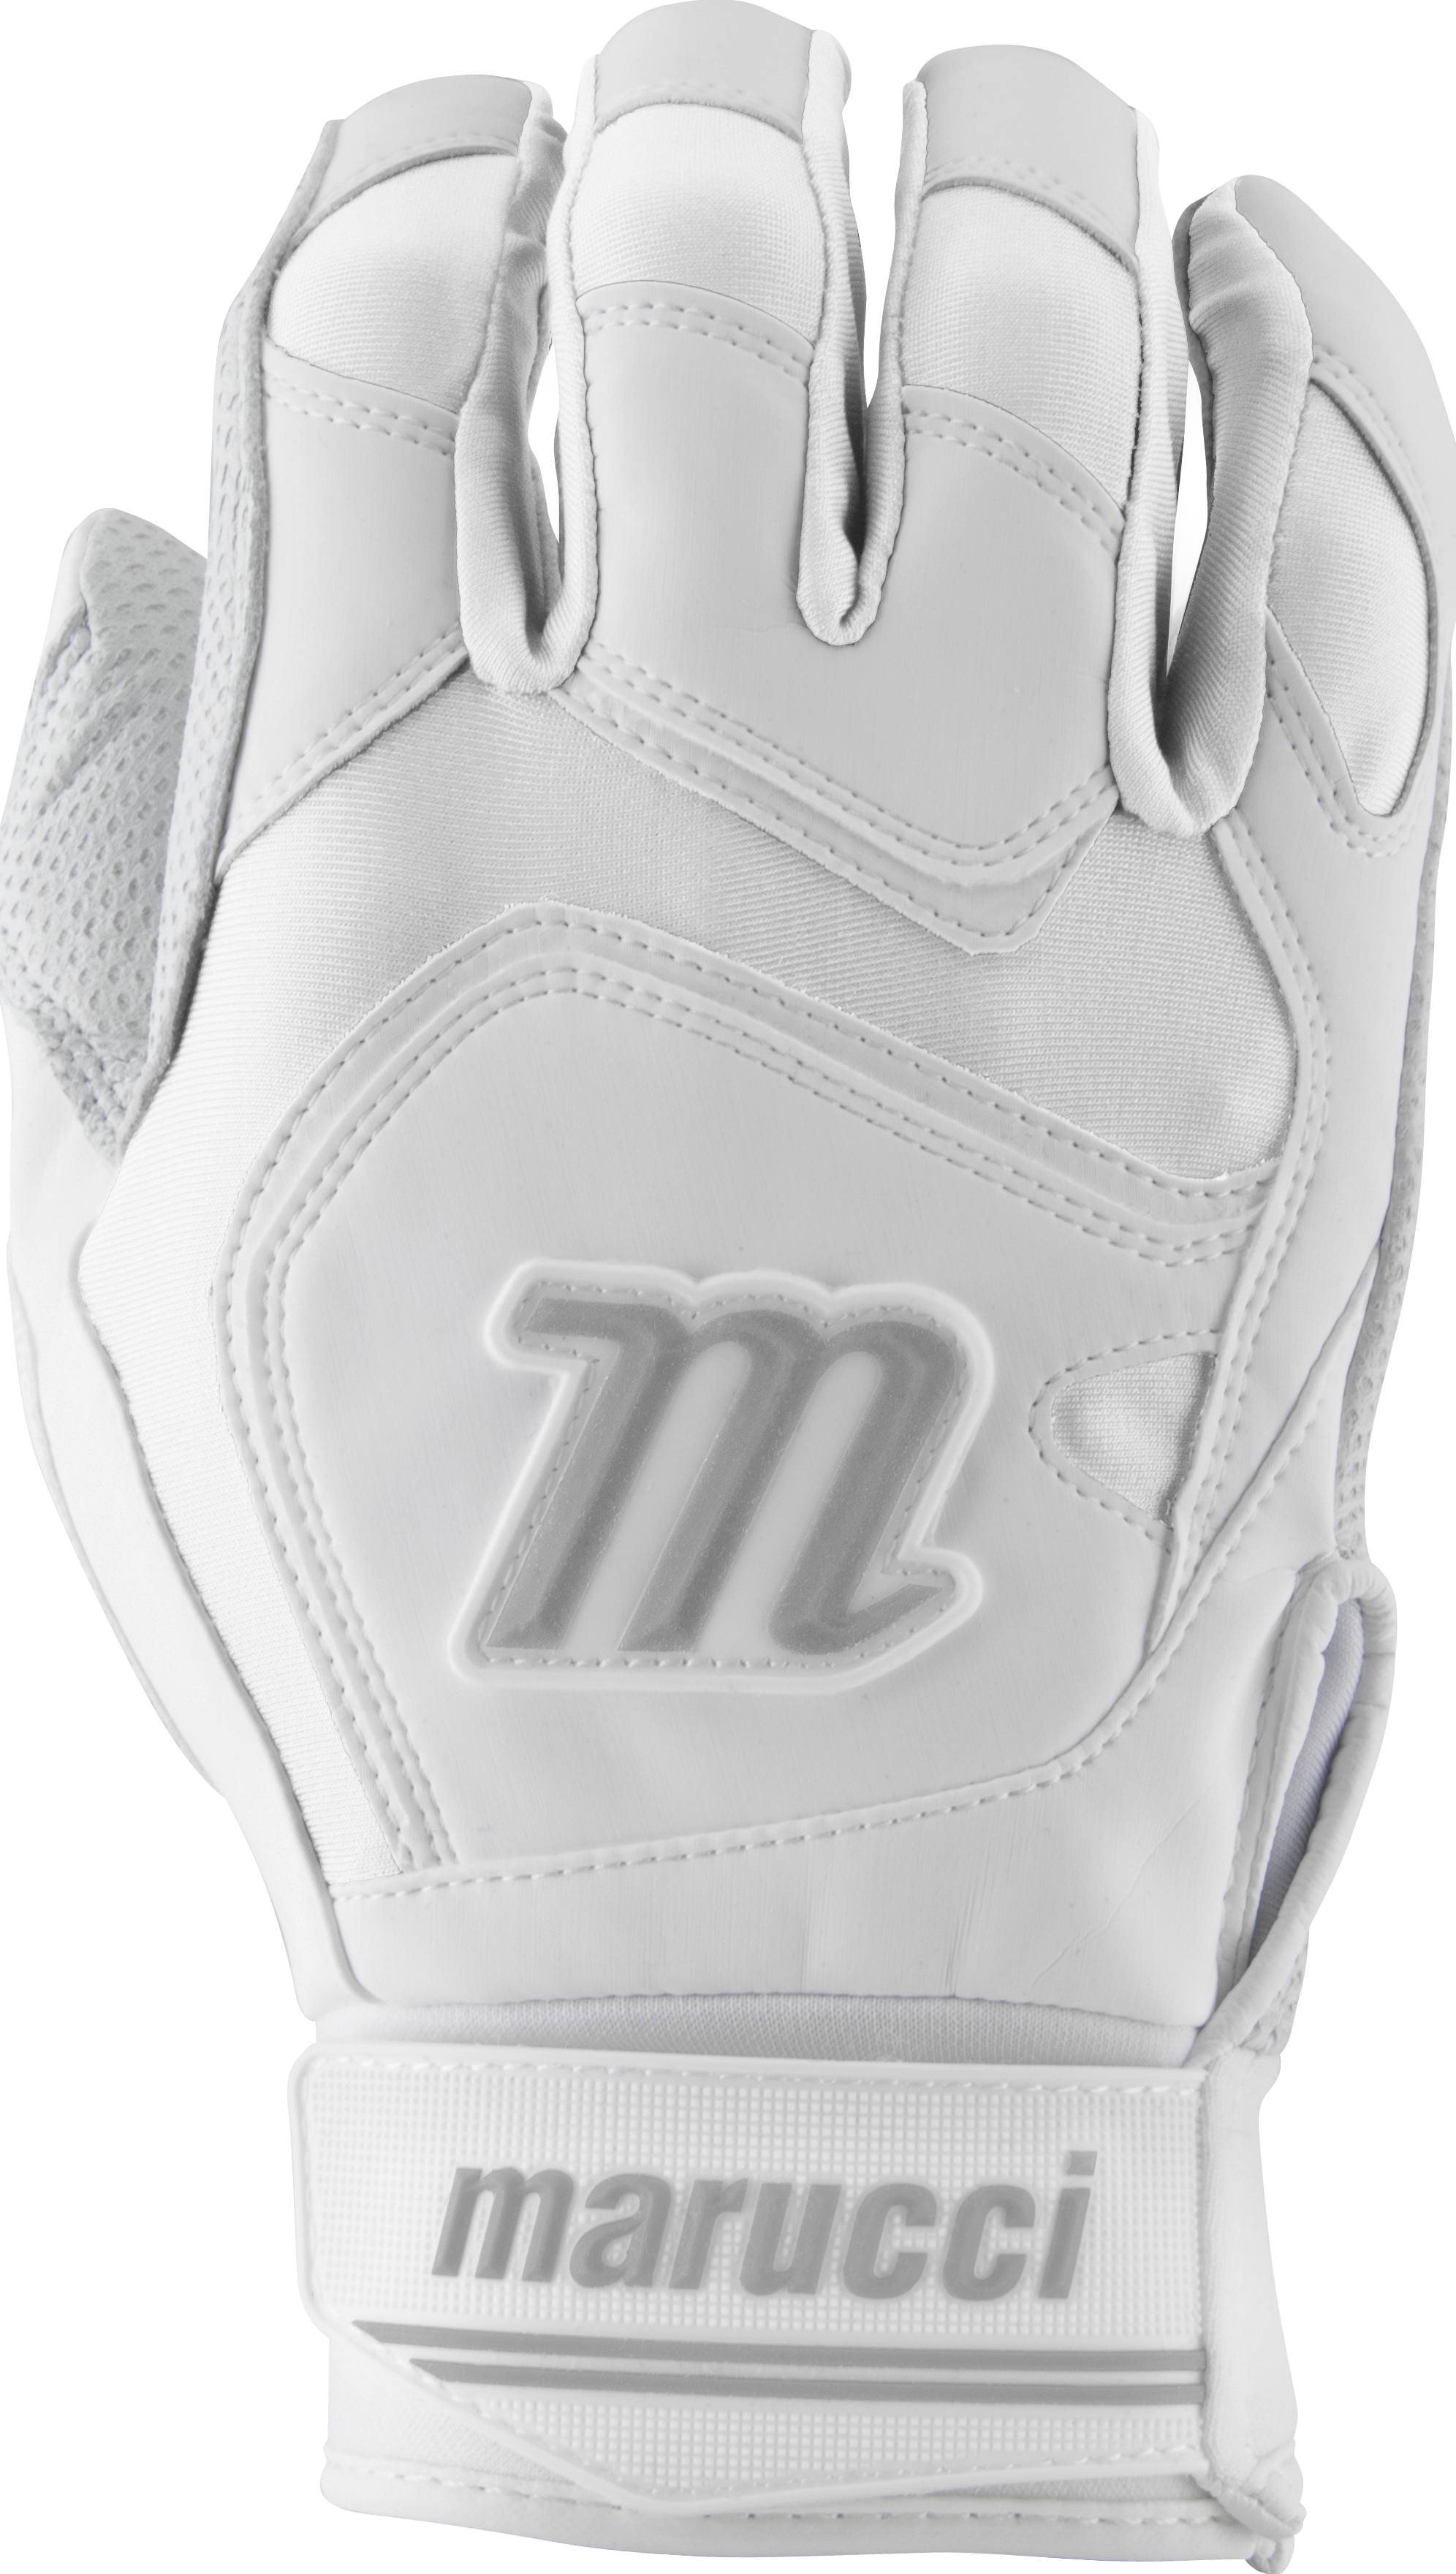 marucci-signature-batting-gloves-mbgsgn2-1-pair-white-white-adult-medium MBGSGN2-WW-AM Marucci 849817096840 2019 Model MBGSGN2 Consistency And Craftsmanship Commitment To Quality And Understanding